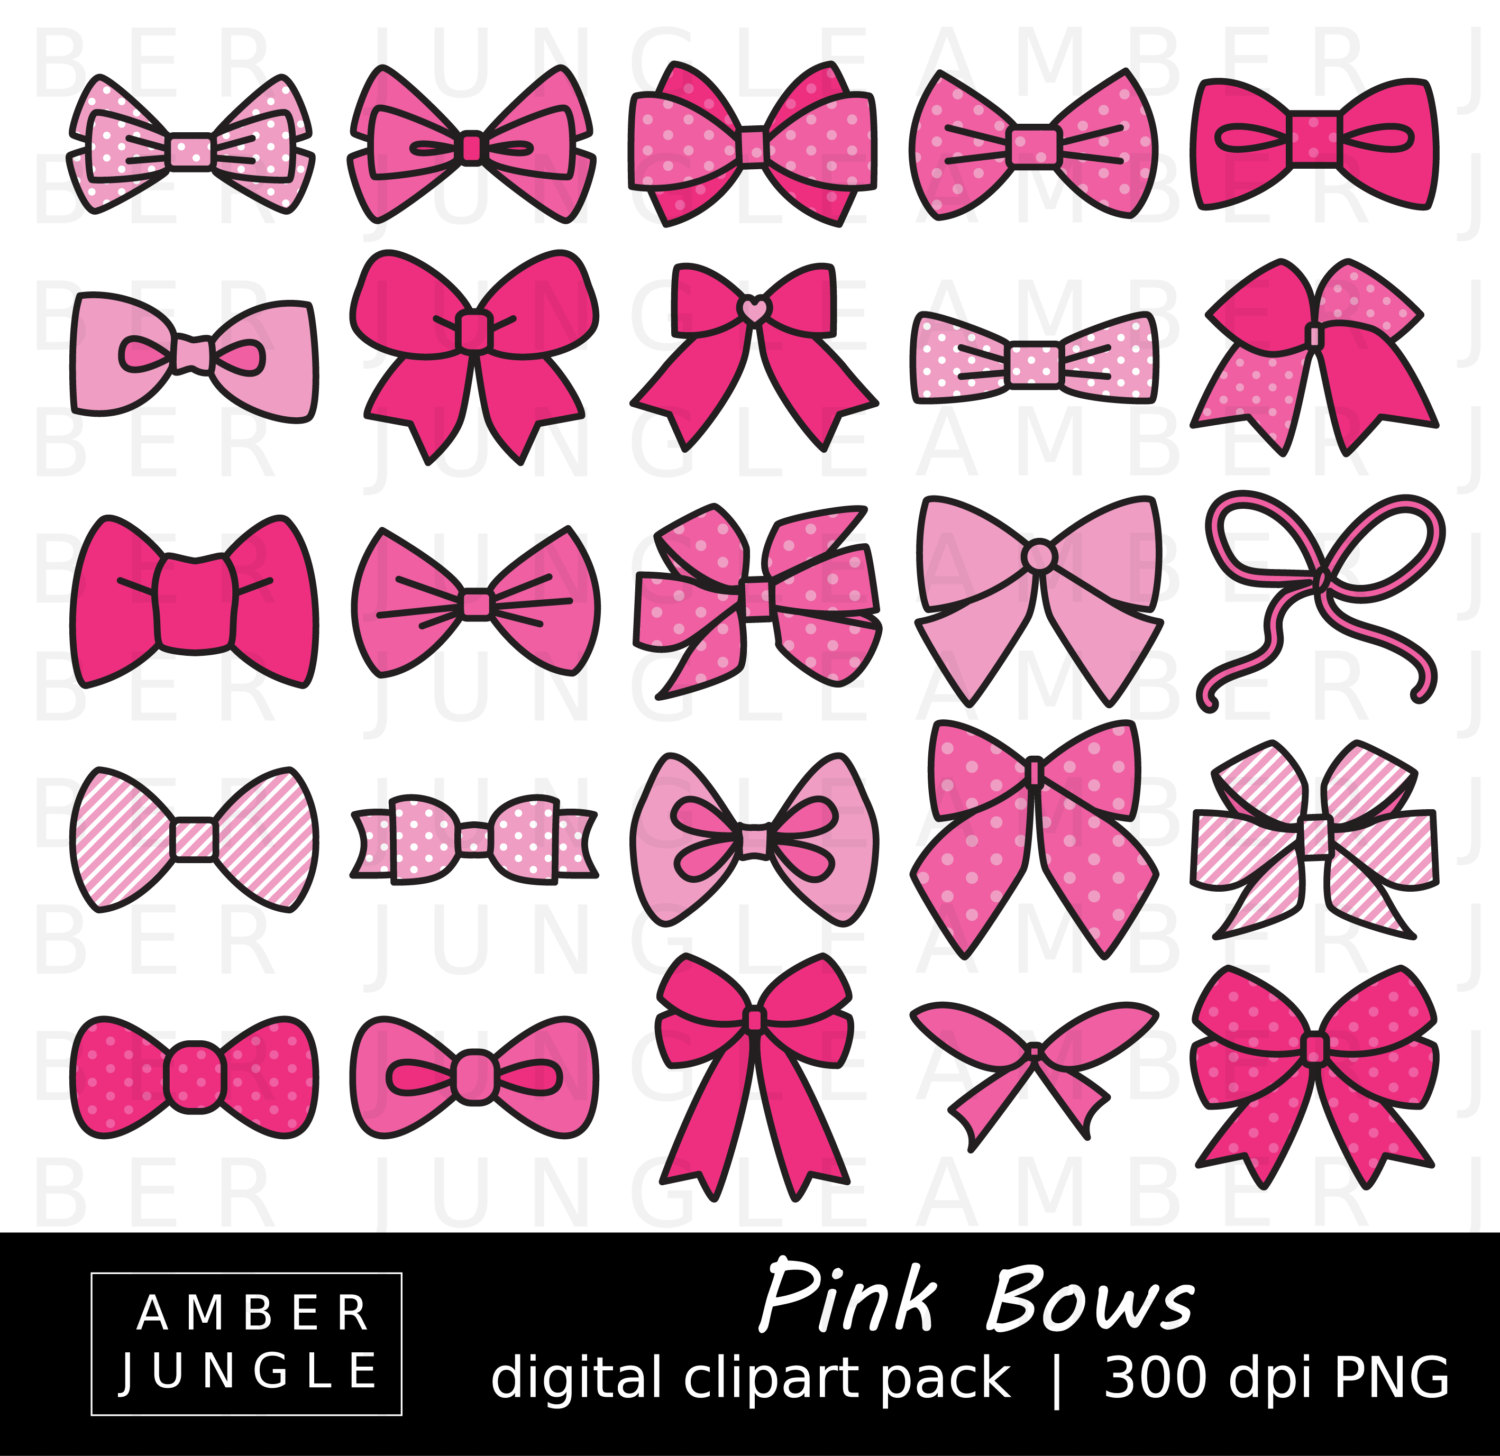 Bows clipart line art. Pink bow images instant